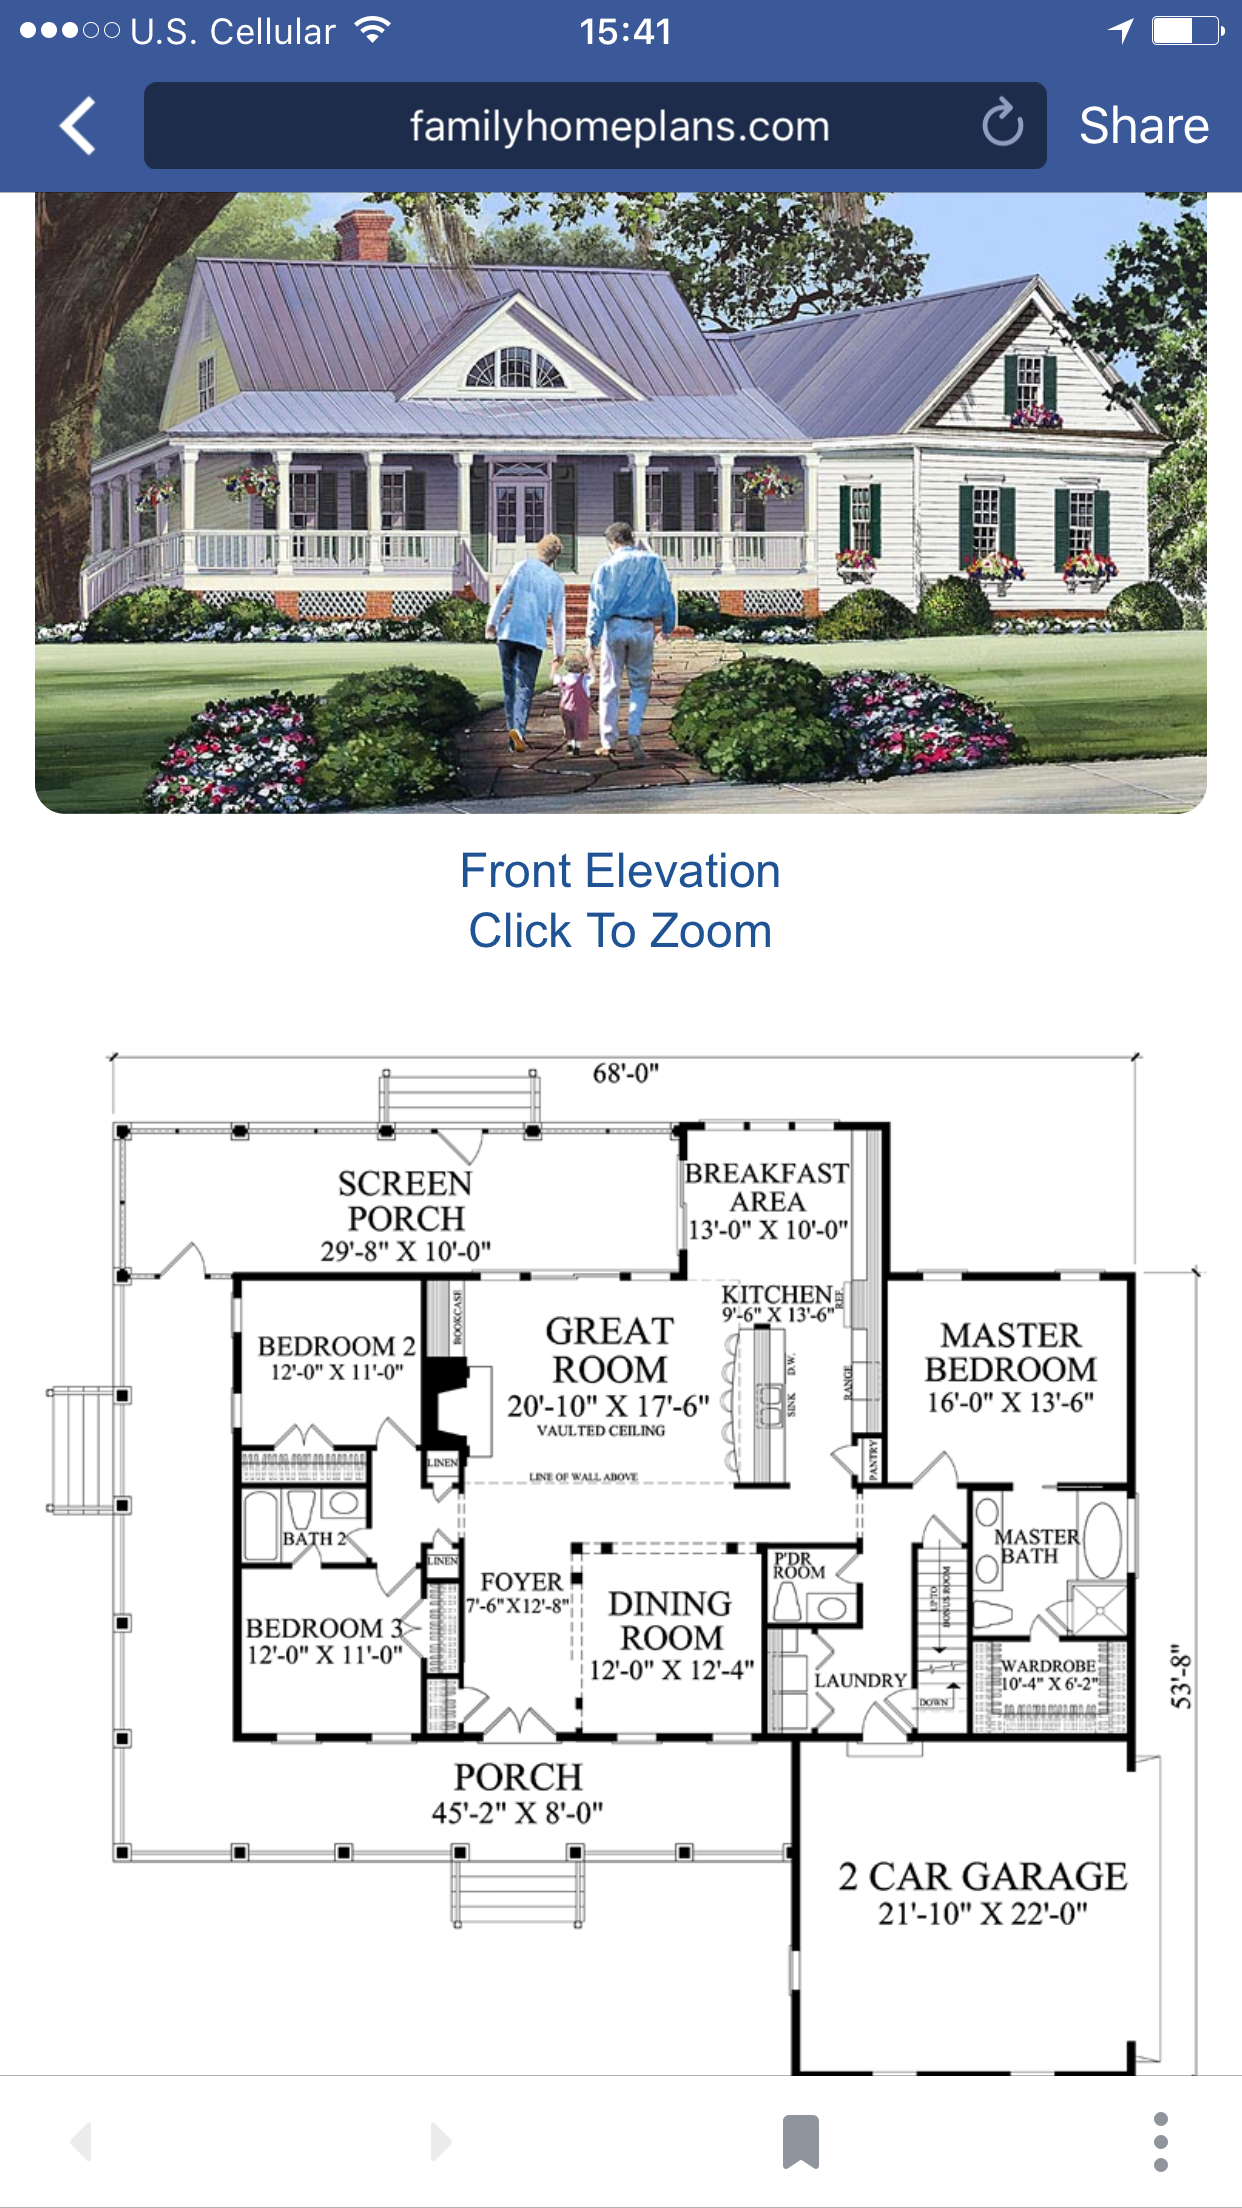 pin by caitlin kugs on house plans house plans house sims house rh pinterest com